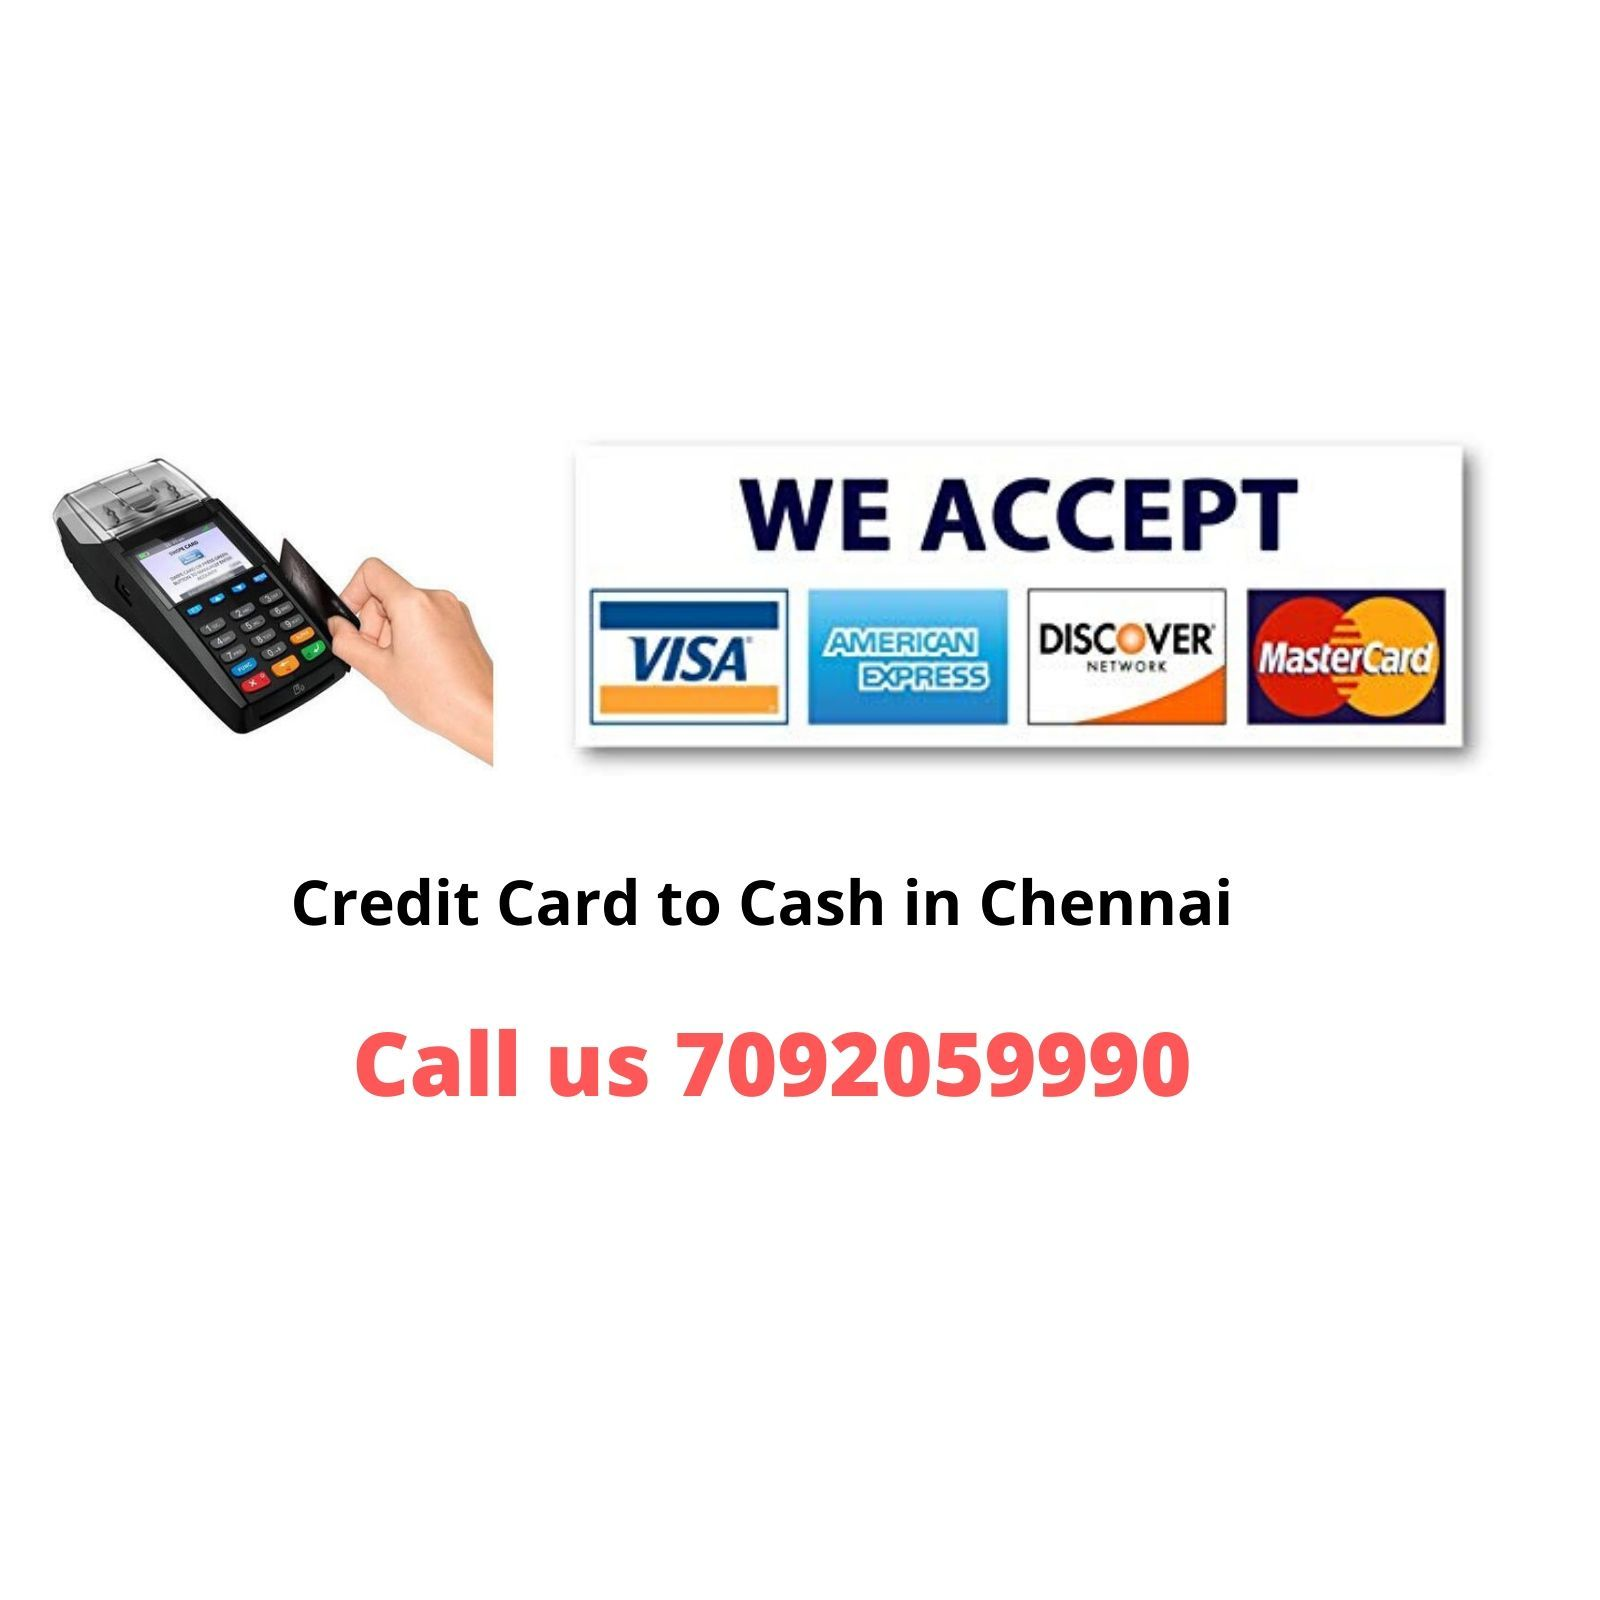 Cash On Credit Card In Chennai Credit Card Finance Loans Credit Card Charges